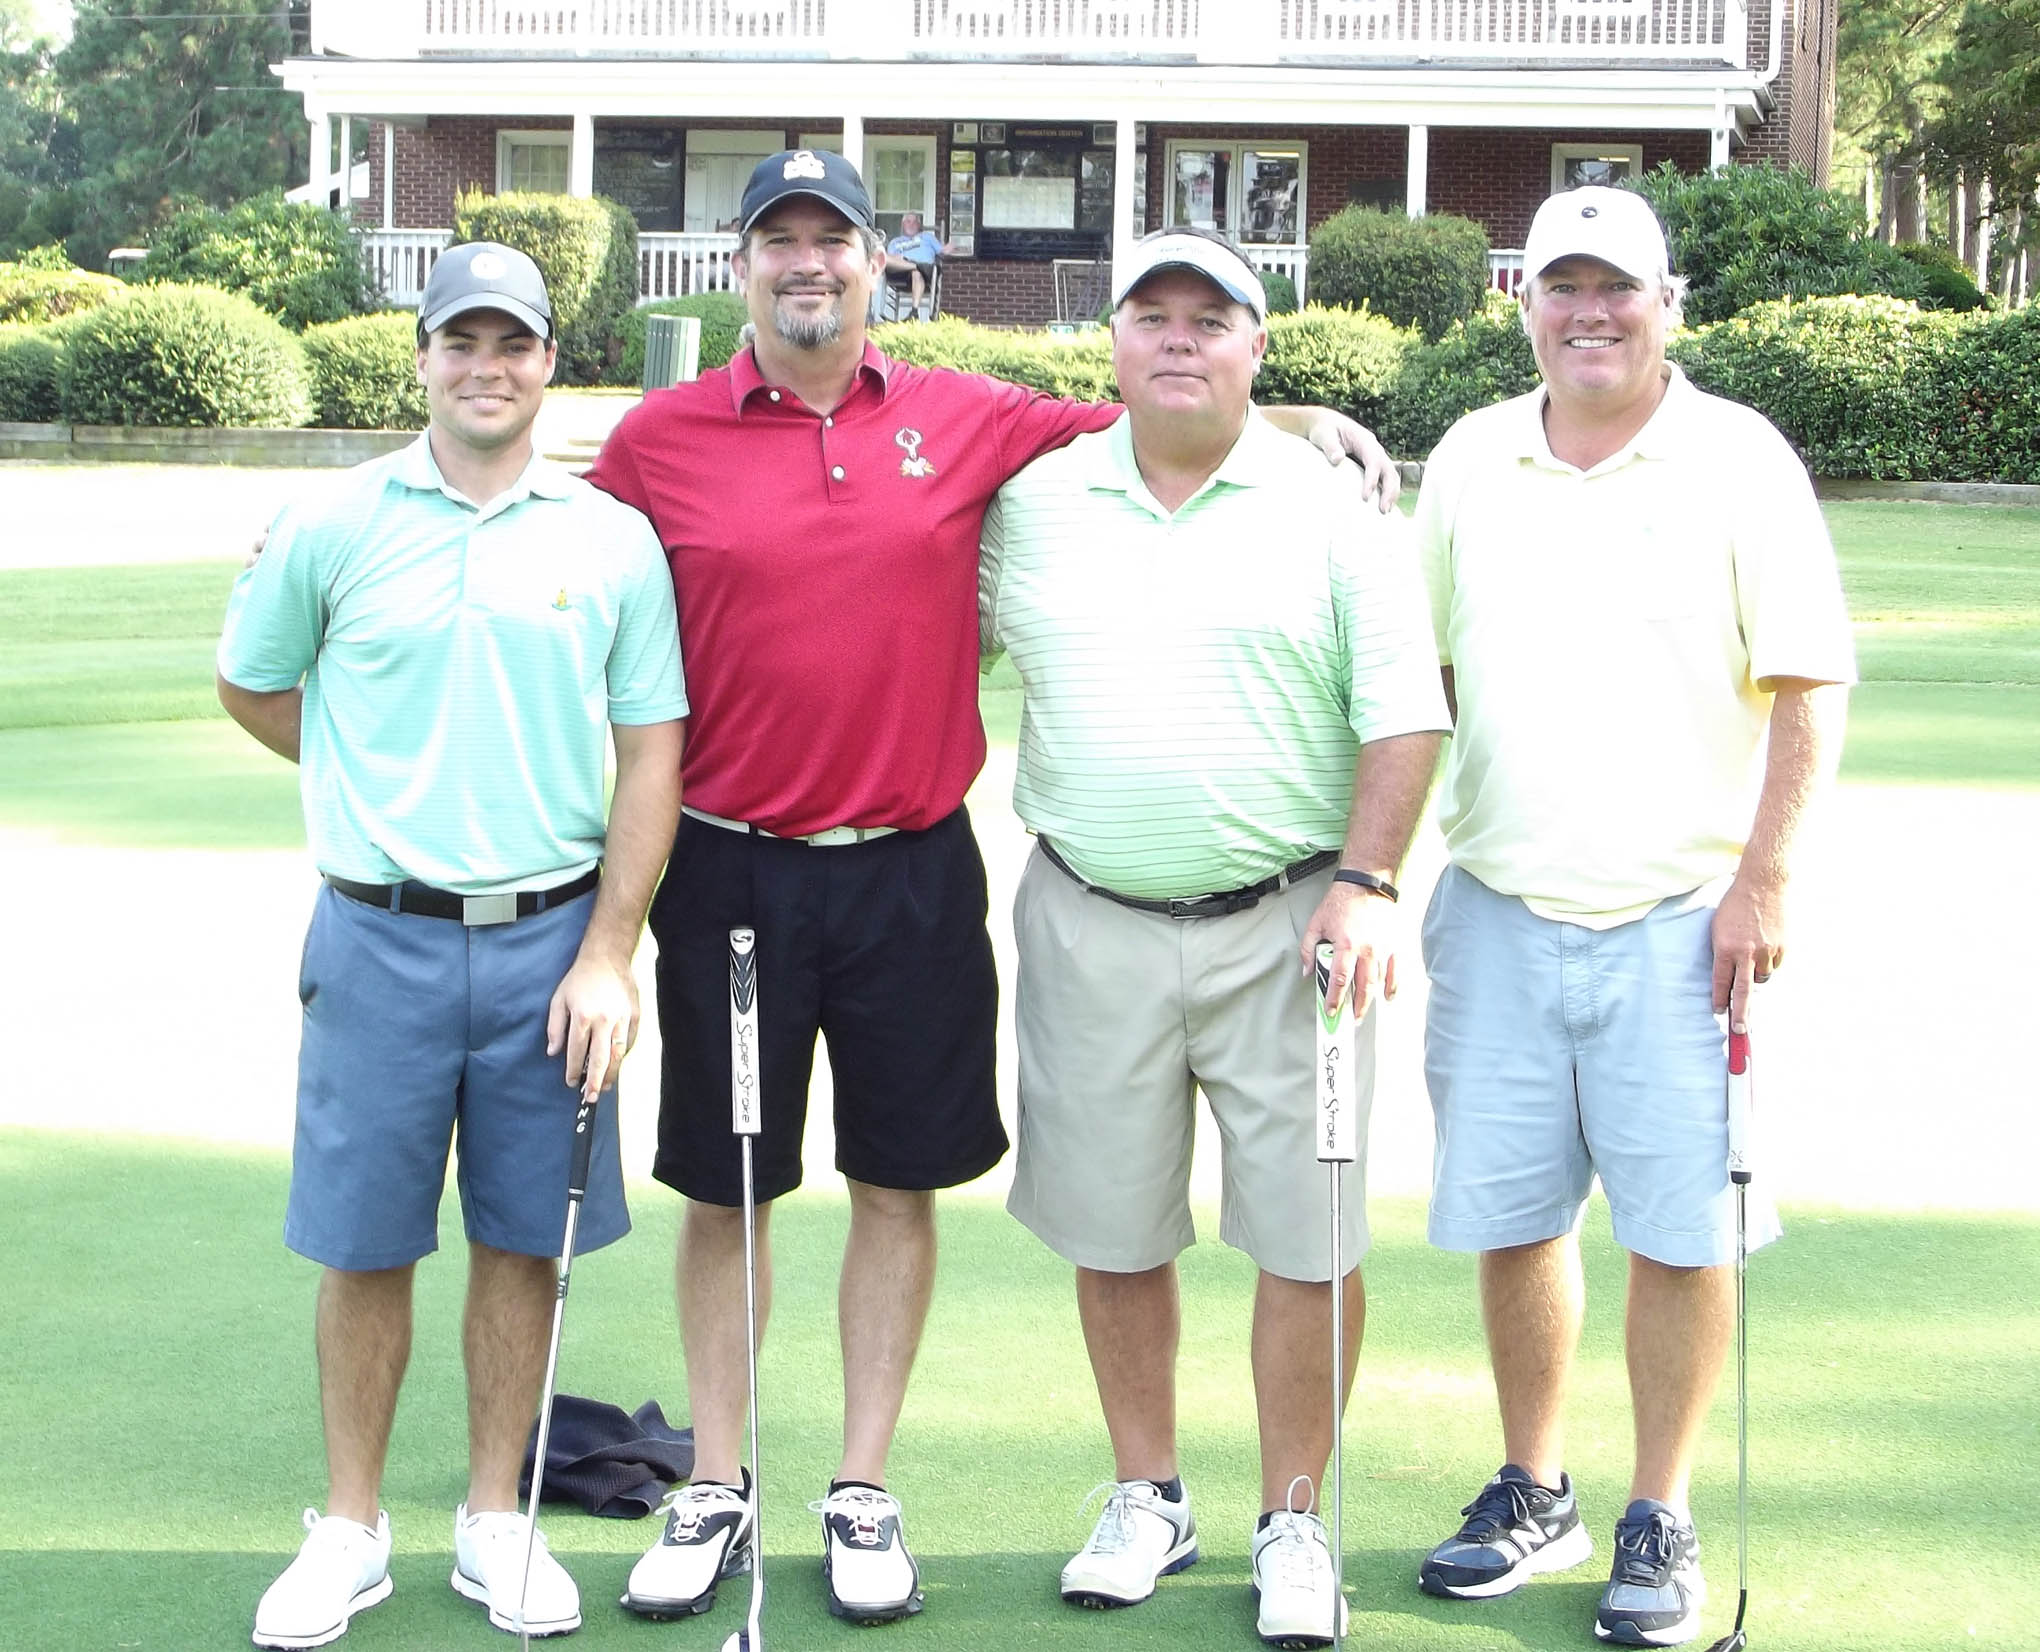 Click to enlarge,  The team of Andy Phillips, Wayne Freeman Jr., Tripp Brizendine, and Robin Williams won the first flight of the afternoon tournament of the CCCC Foundation Lee Golf Classic.